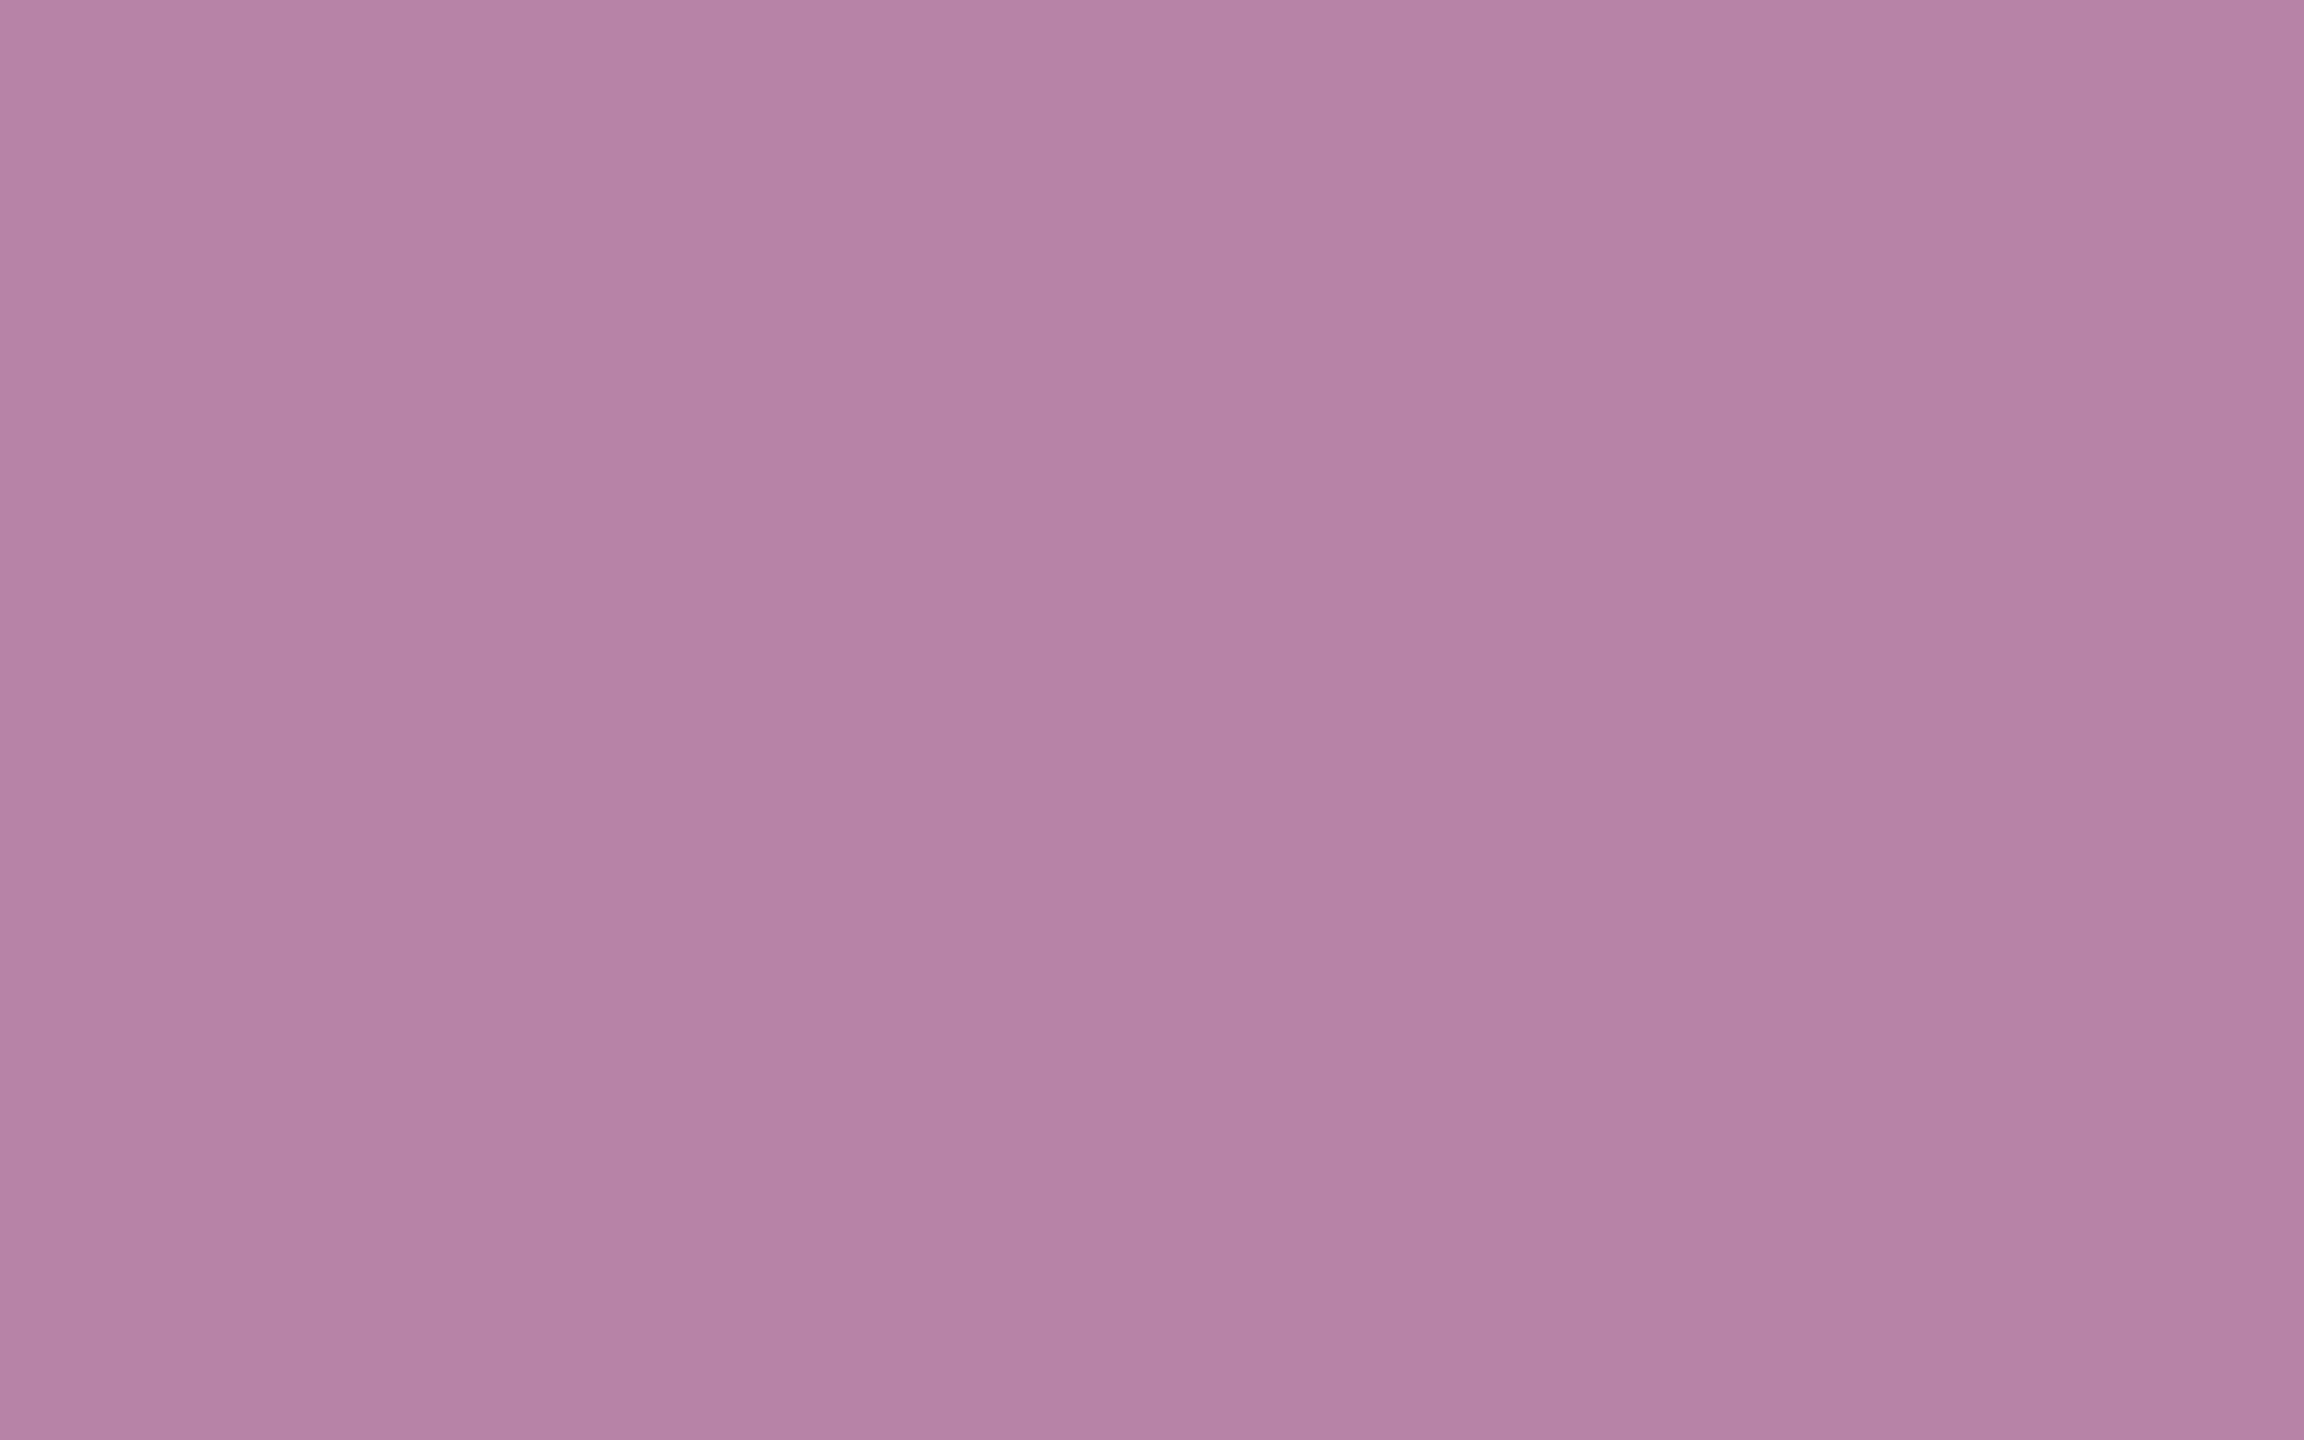 2304x1440 Opera Mauve Solid Color Background